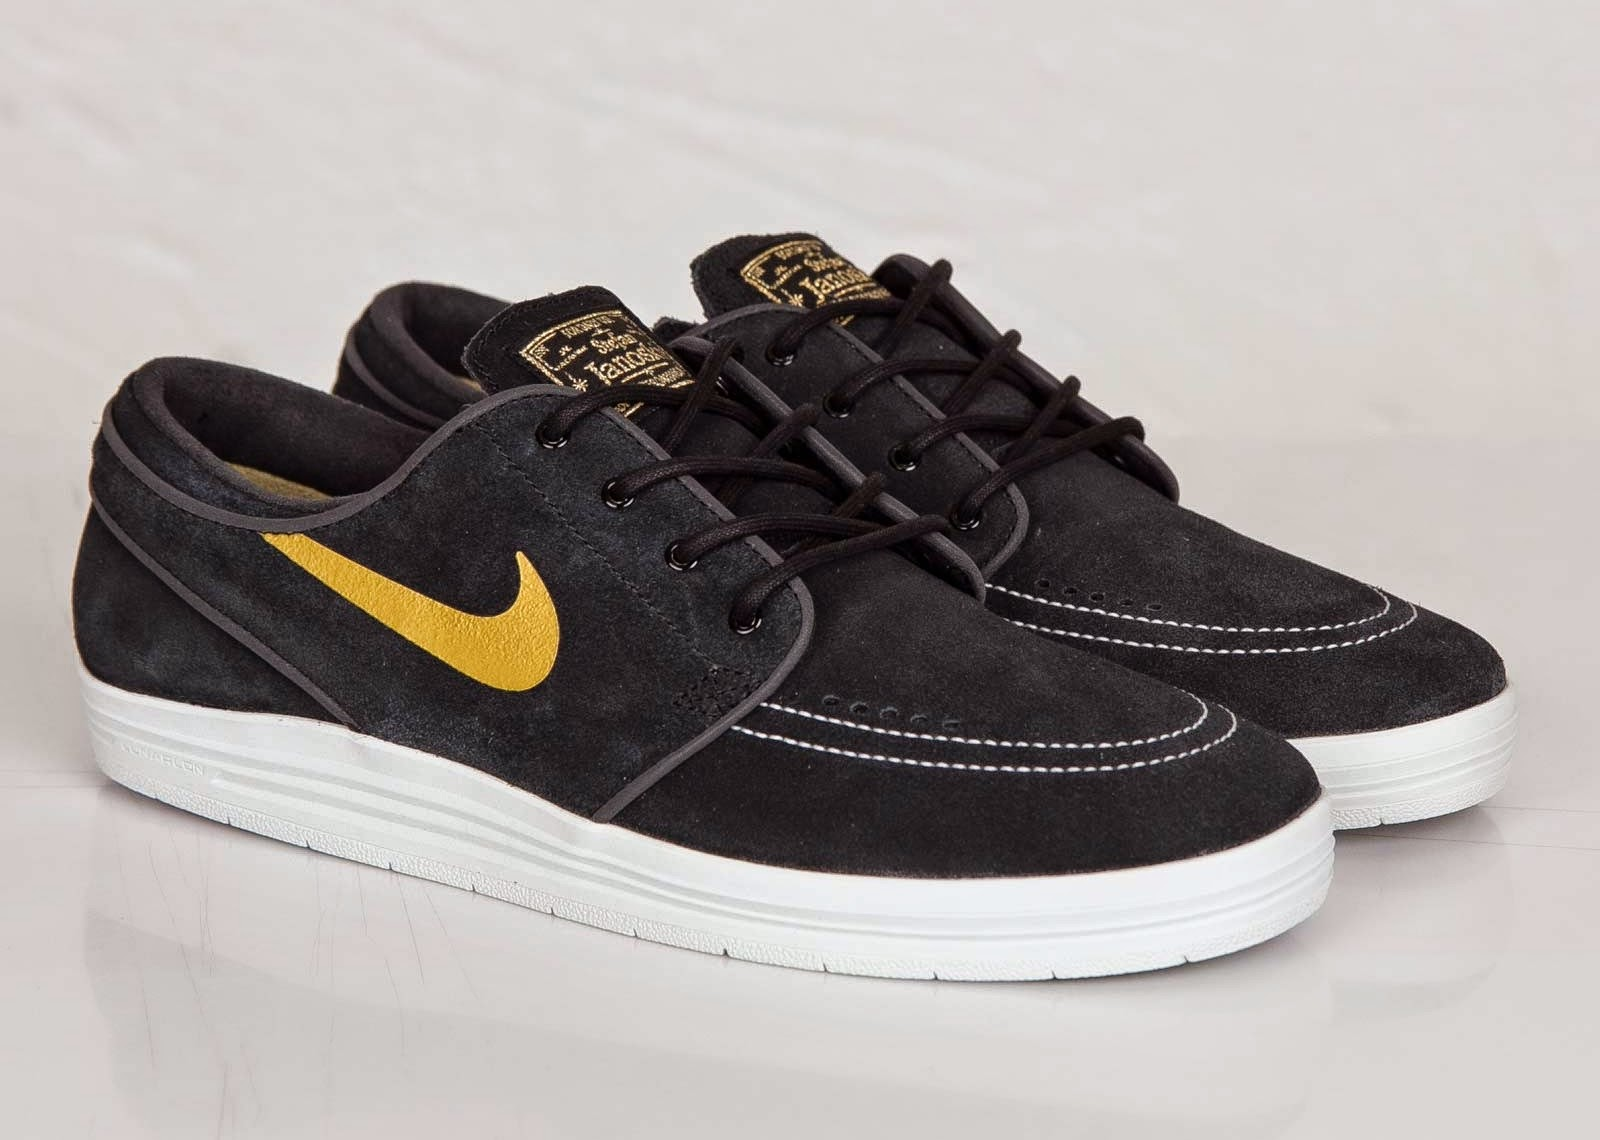 688ddec4fd79 ... new arrivals nike sbs 2014 collection includes this pair of nike sb  lunar janoski low.